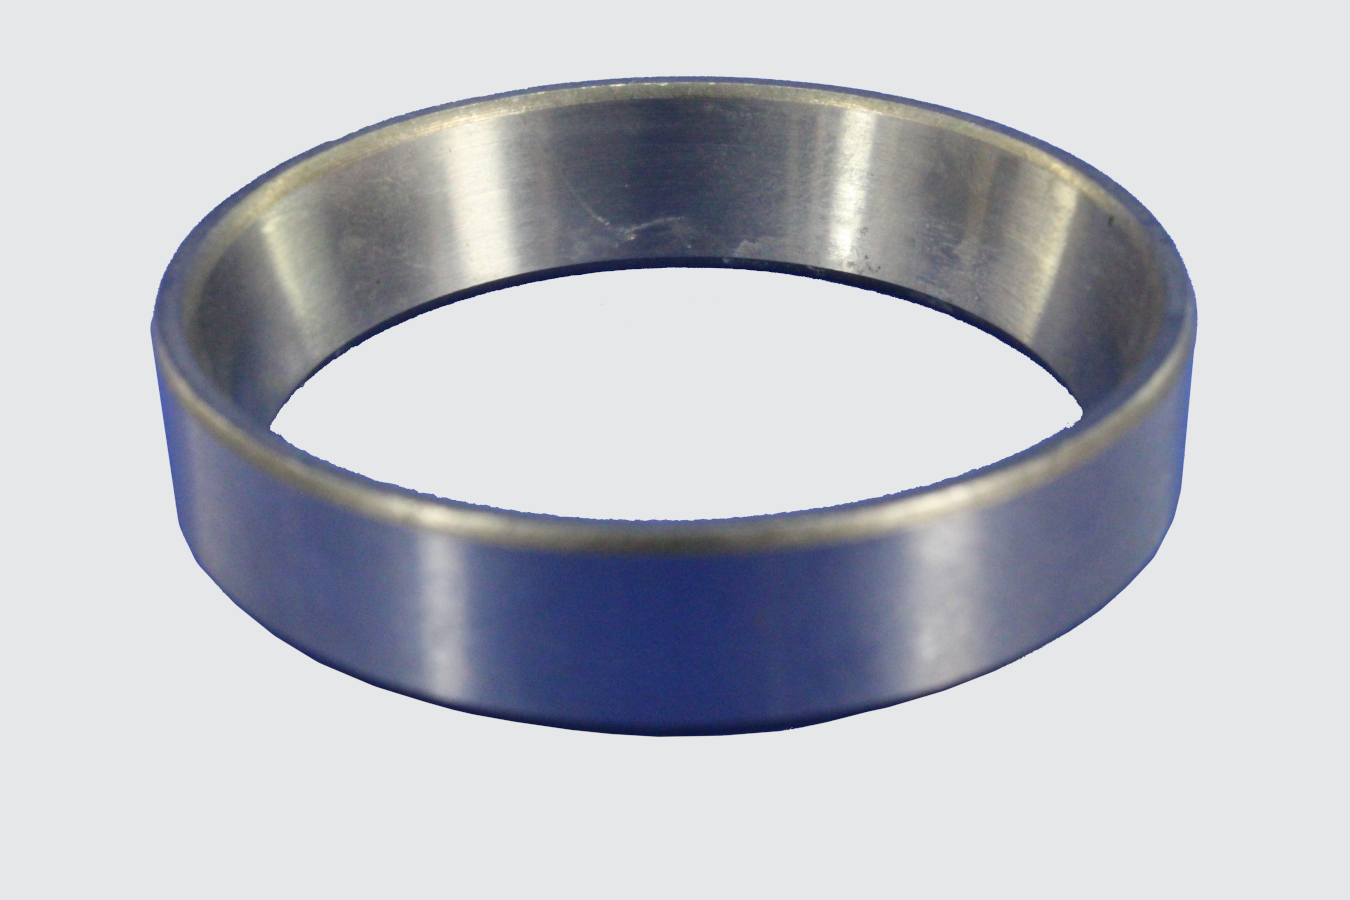 35315183-CUP, OUTER BEARING